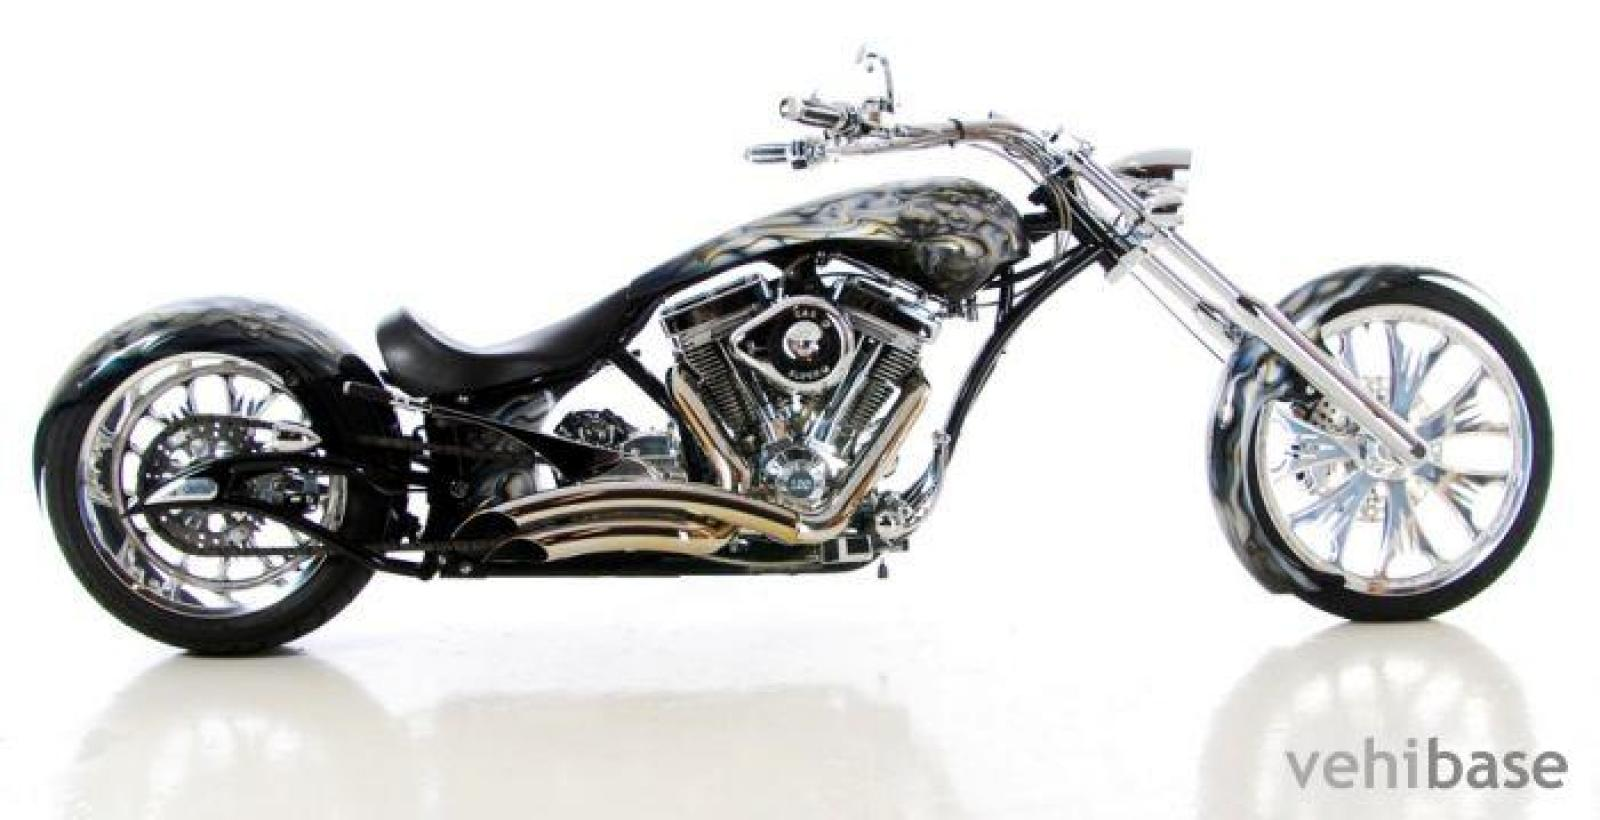 Big Bear Choppers Sled 100 EFI Evolution images #93355